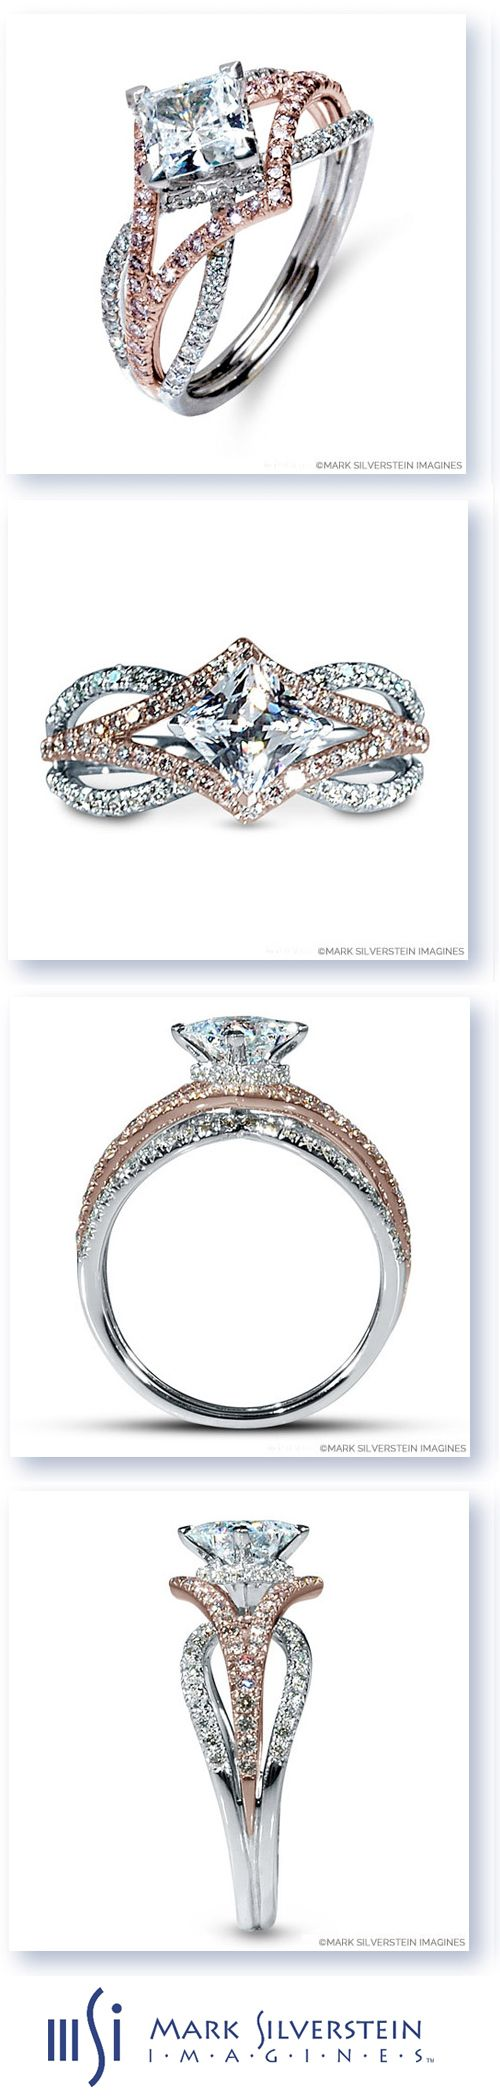 This edgy 18K white and rose gold engagement ring features pavé-set pink and white diamonds on a three-strand crossover design. The middle strand sweeps out on either side of the framed center stone to create a diamond-shaped convergence. This high polish ring is destined for a celebration of epic proportions. Mark Silverstein Imagines Avea diamond ring